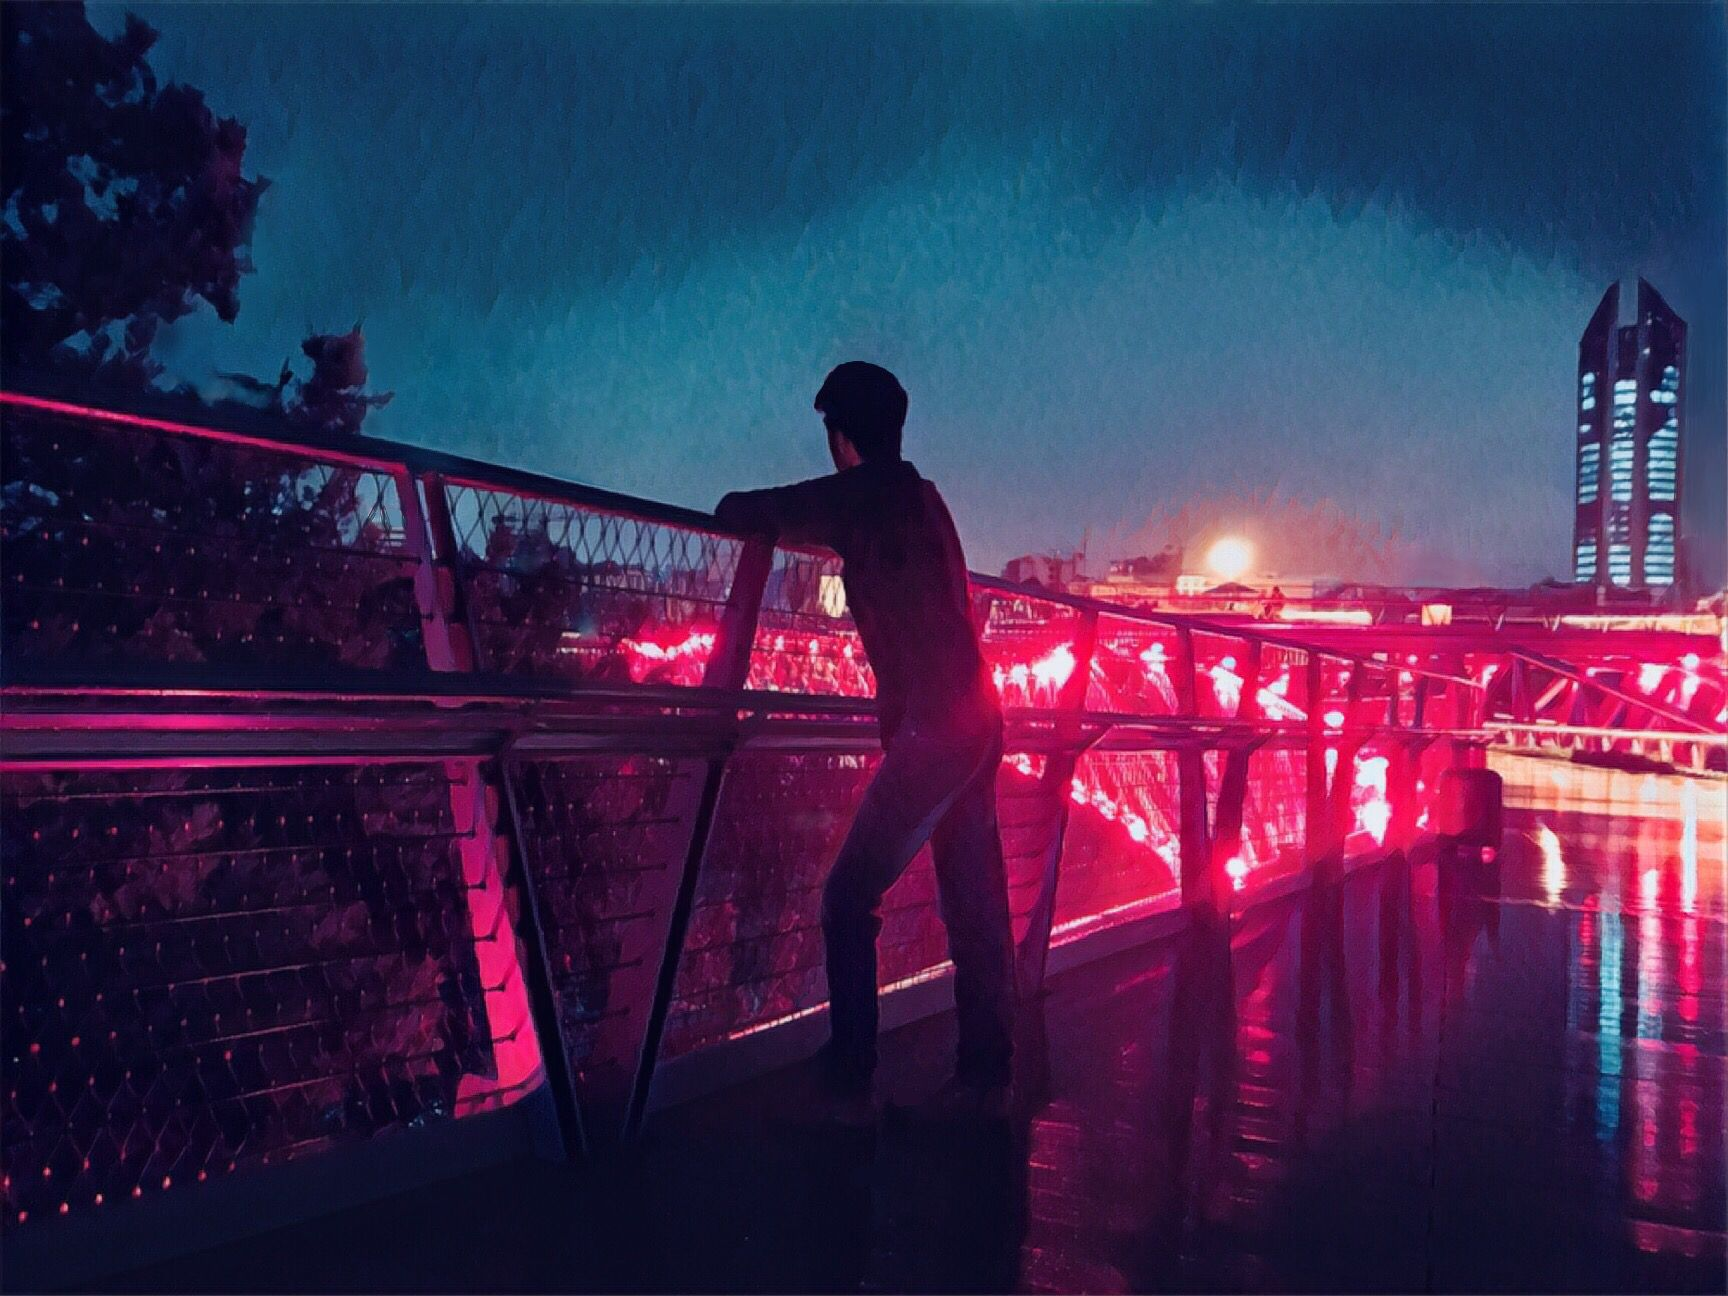 Alone Boy In Night Bridge Light Photography Photoshop Alone Boy Photography Background Images For Editing Boy Photography